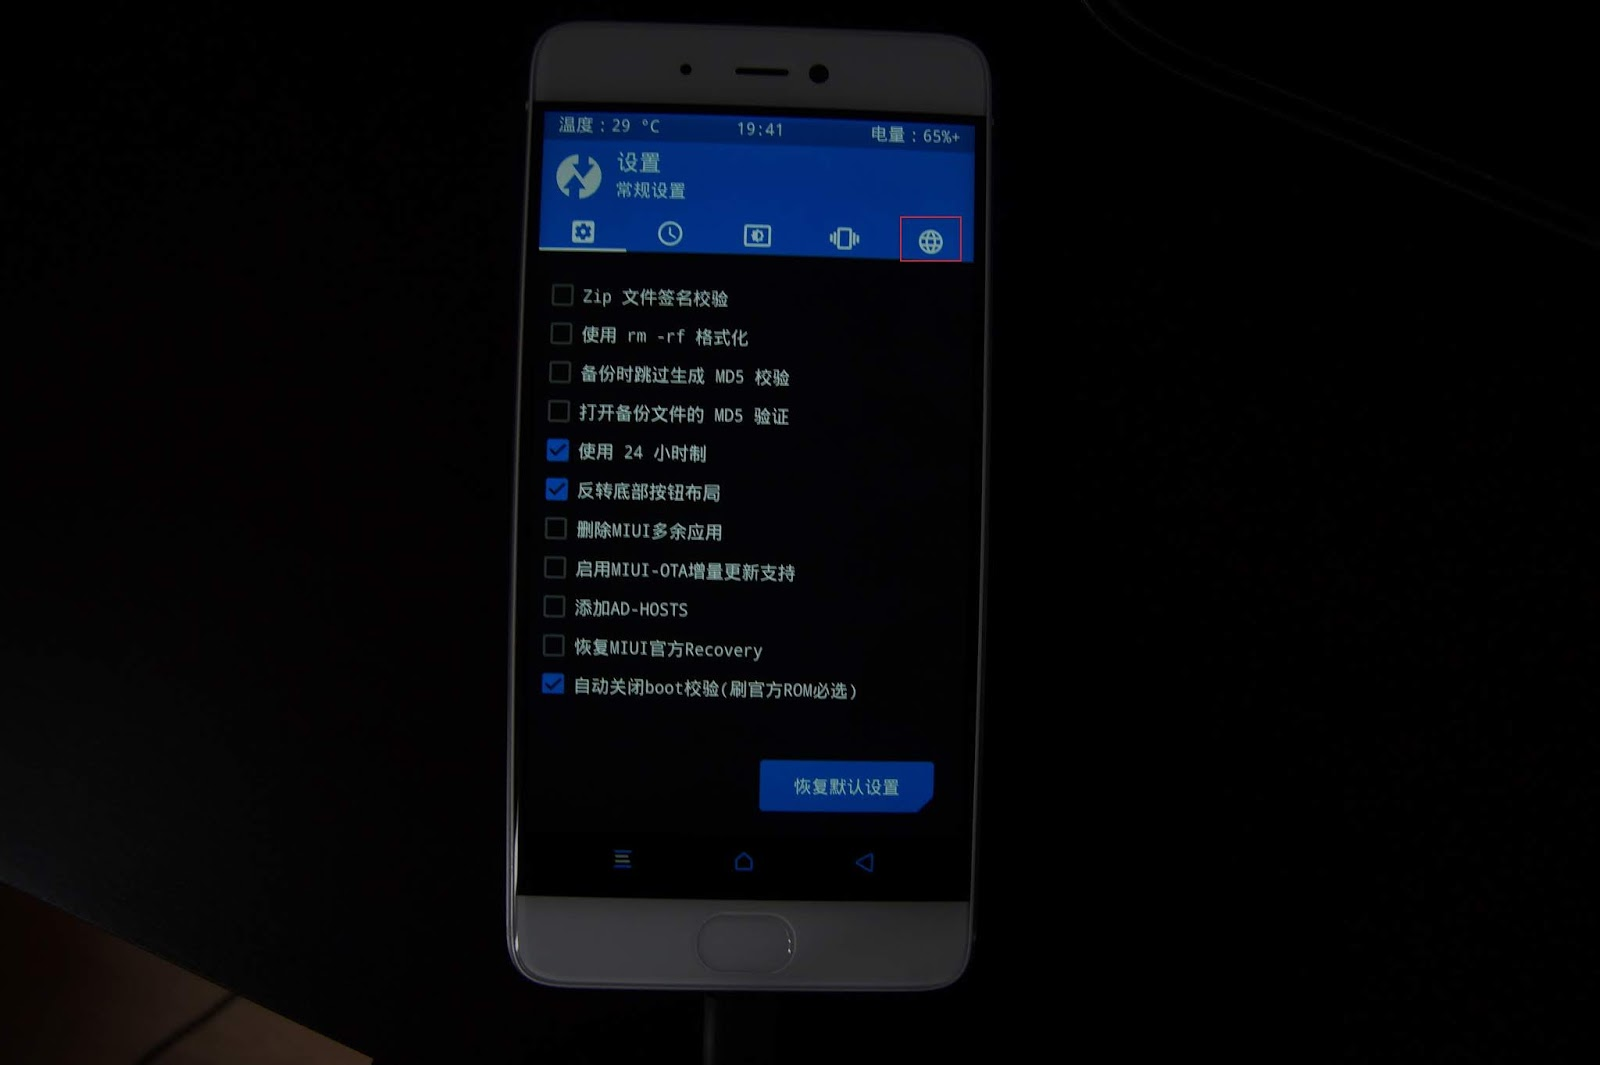 √ Instructions: Install TWRP & Xiaomi ROM on Xiaomi